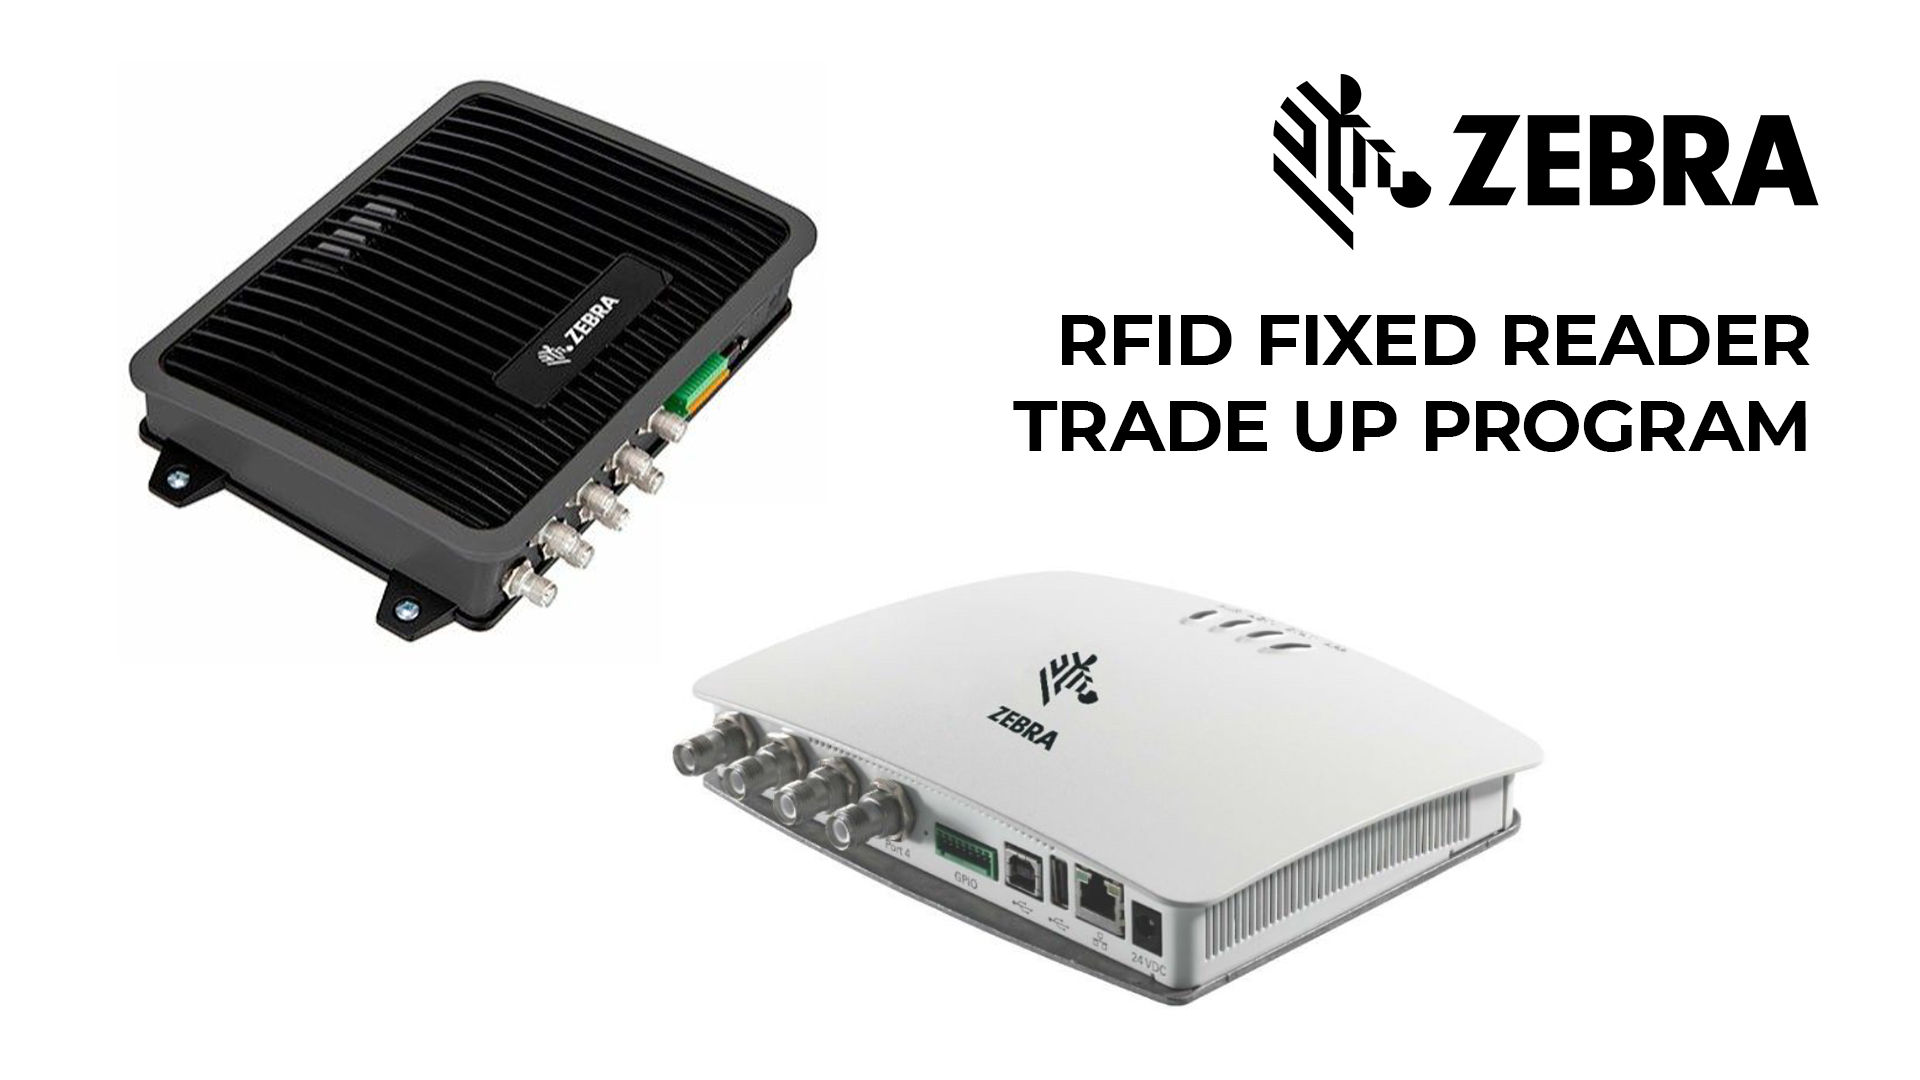 RFID Fixed Reader Trade Up Program